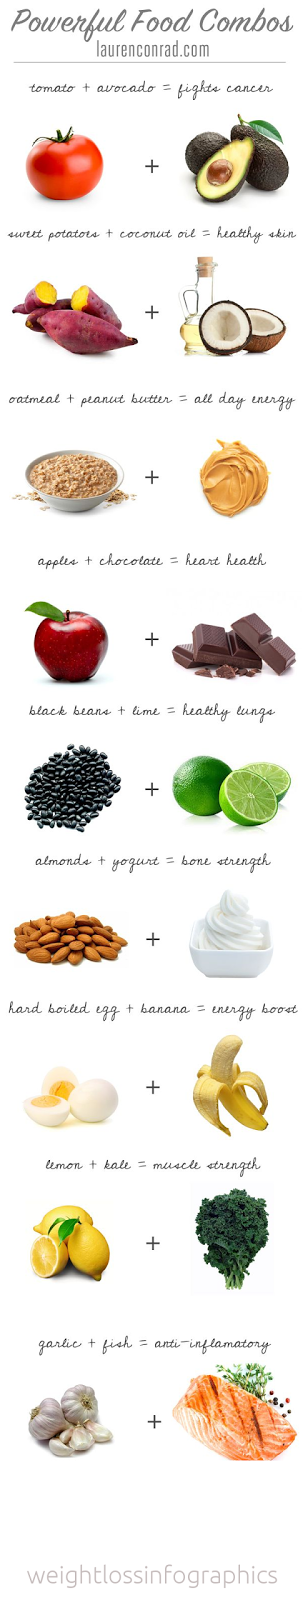 9 Powerful Food Combos